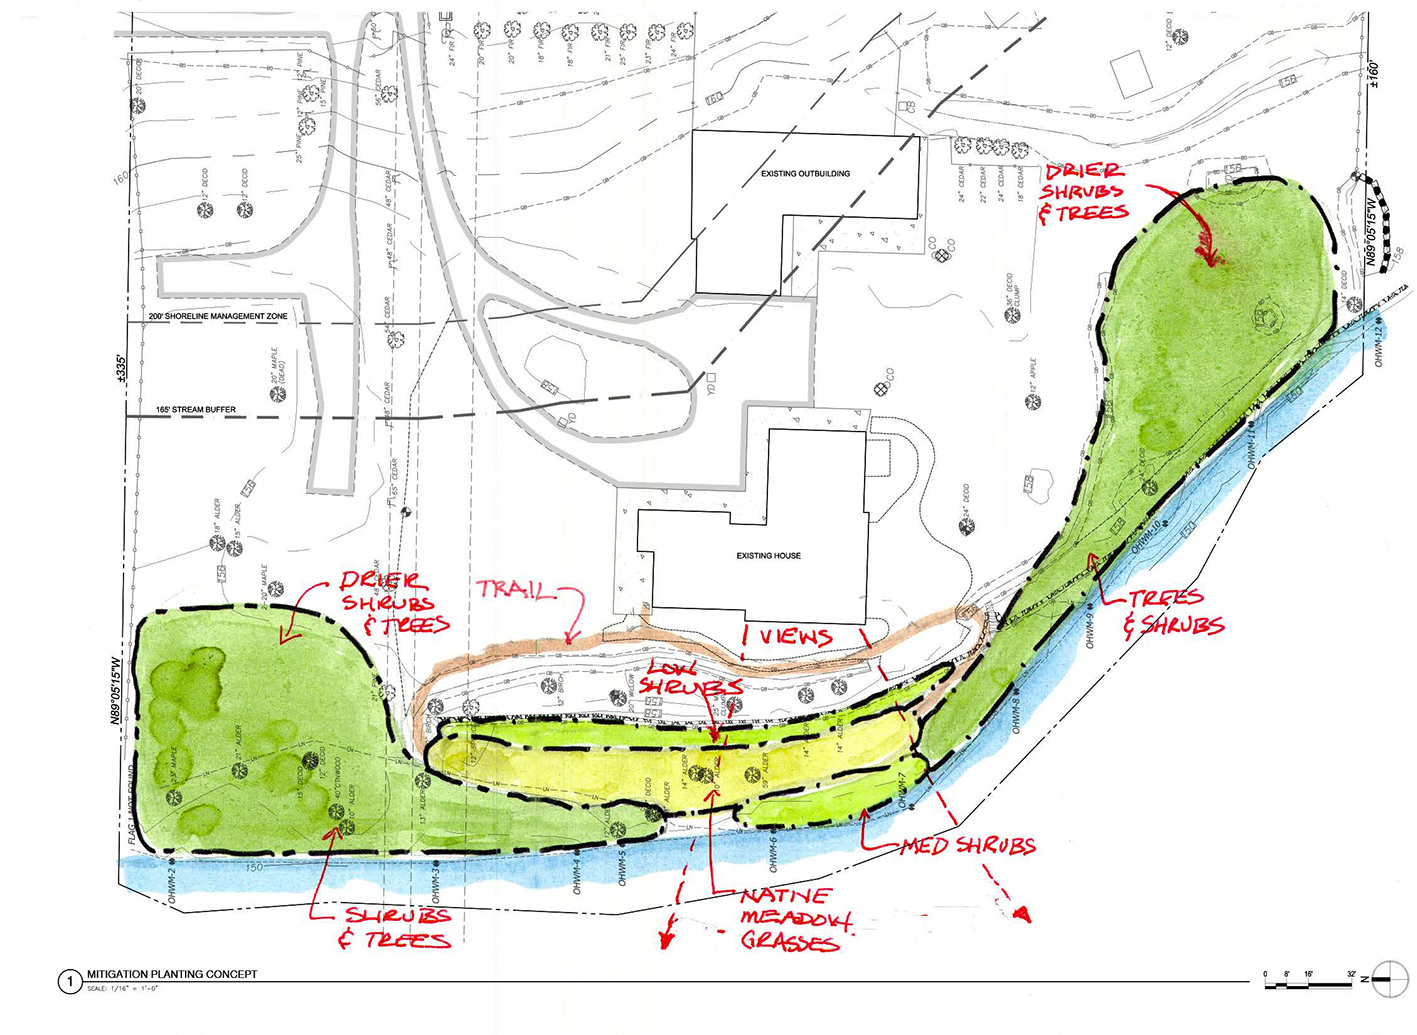 Mitigation schematic for an active salmon run on Issaquah Creek